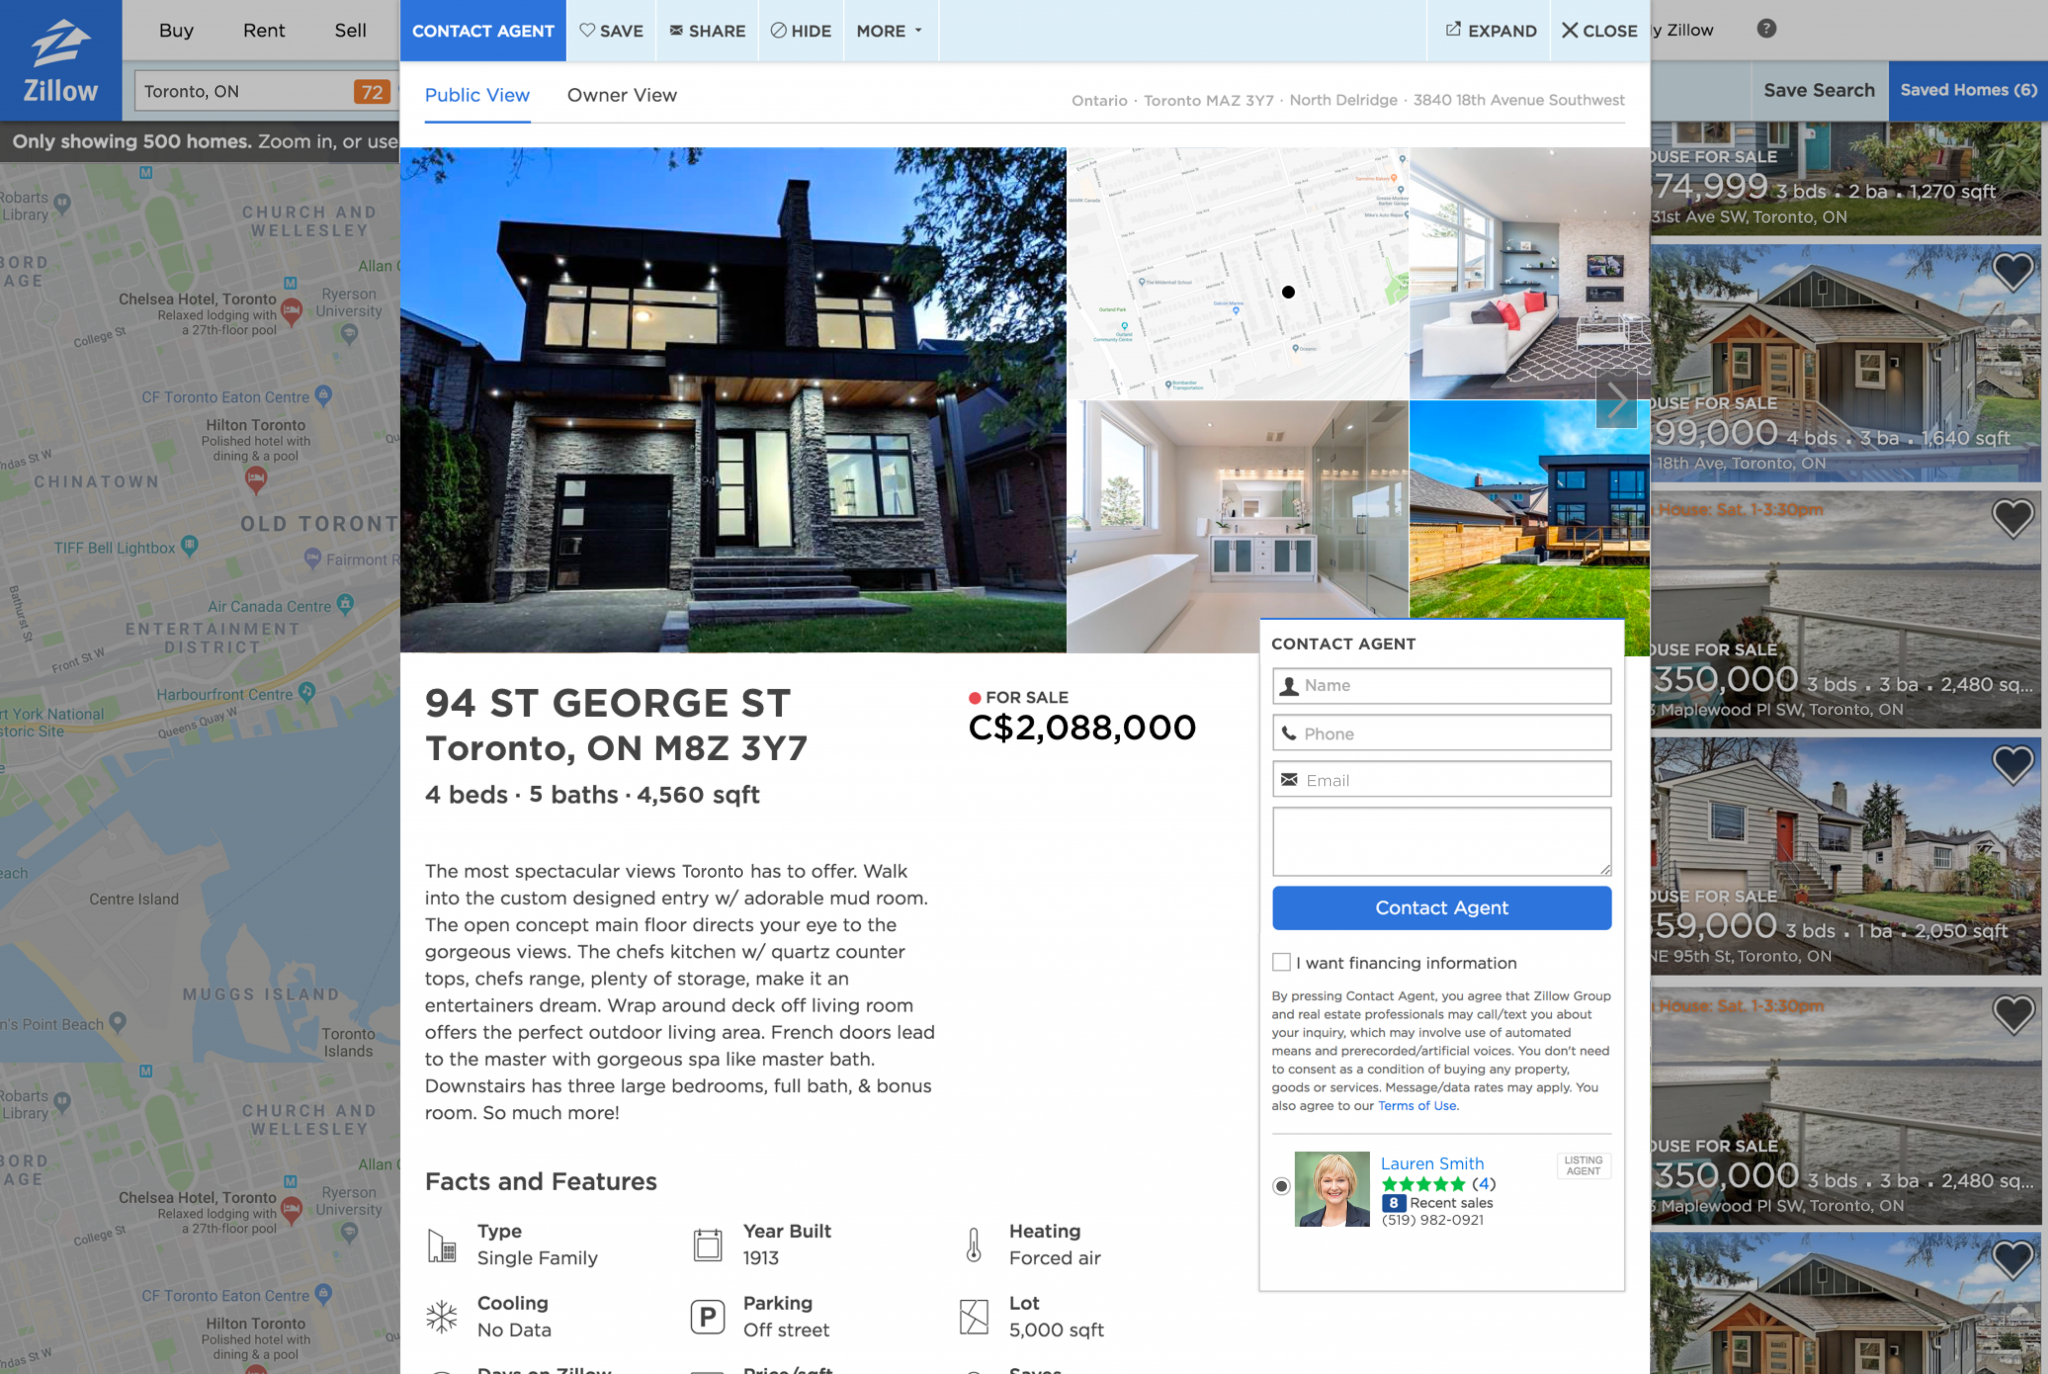 Zillow Canada | Real Estate Listings in Canada on chase mobile, instagram mobile, bank of america mobile,